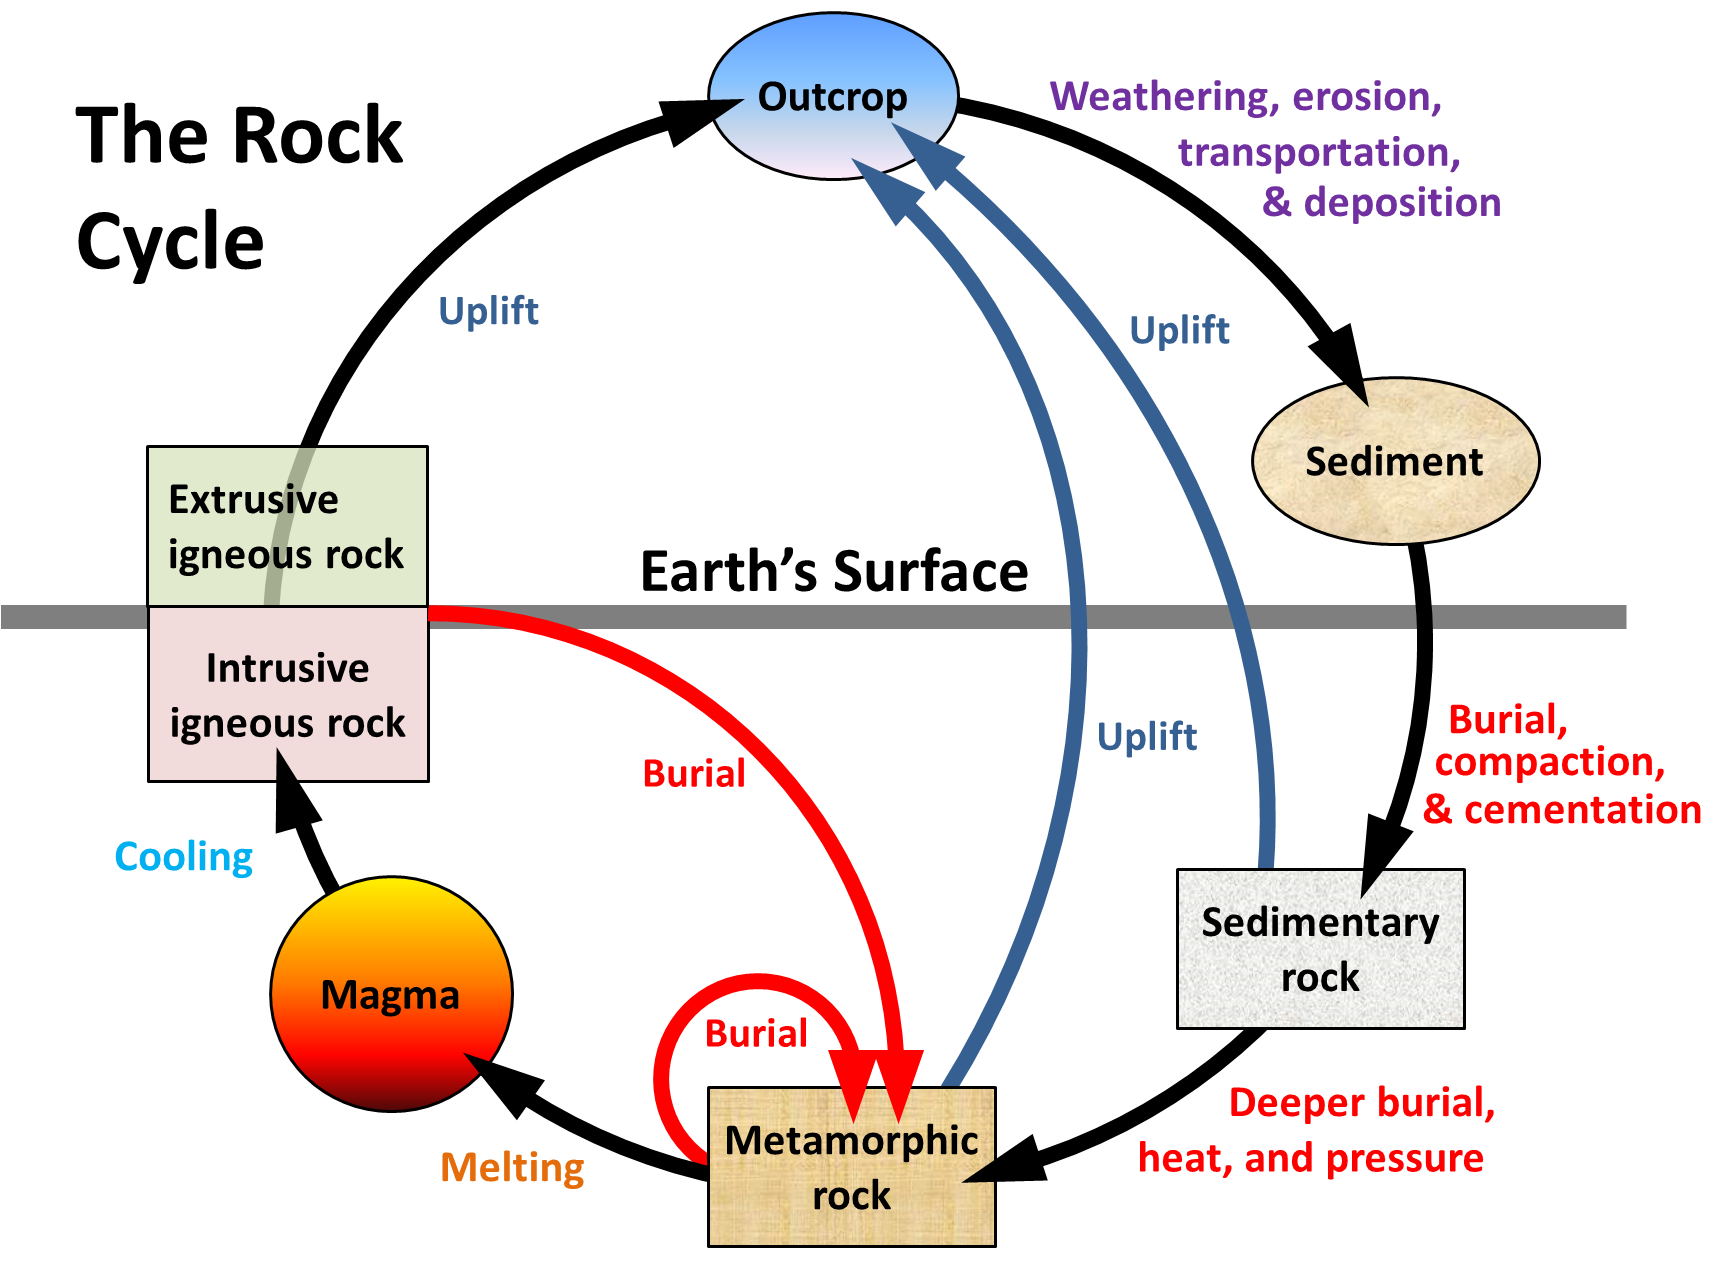 Chapter 7 metamorphism and metamorphic rocks physical geology the place of metamorphic rock in the rock cycle long description available pooptronica Choice Image